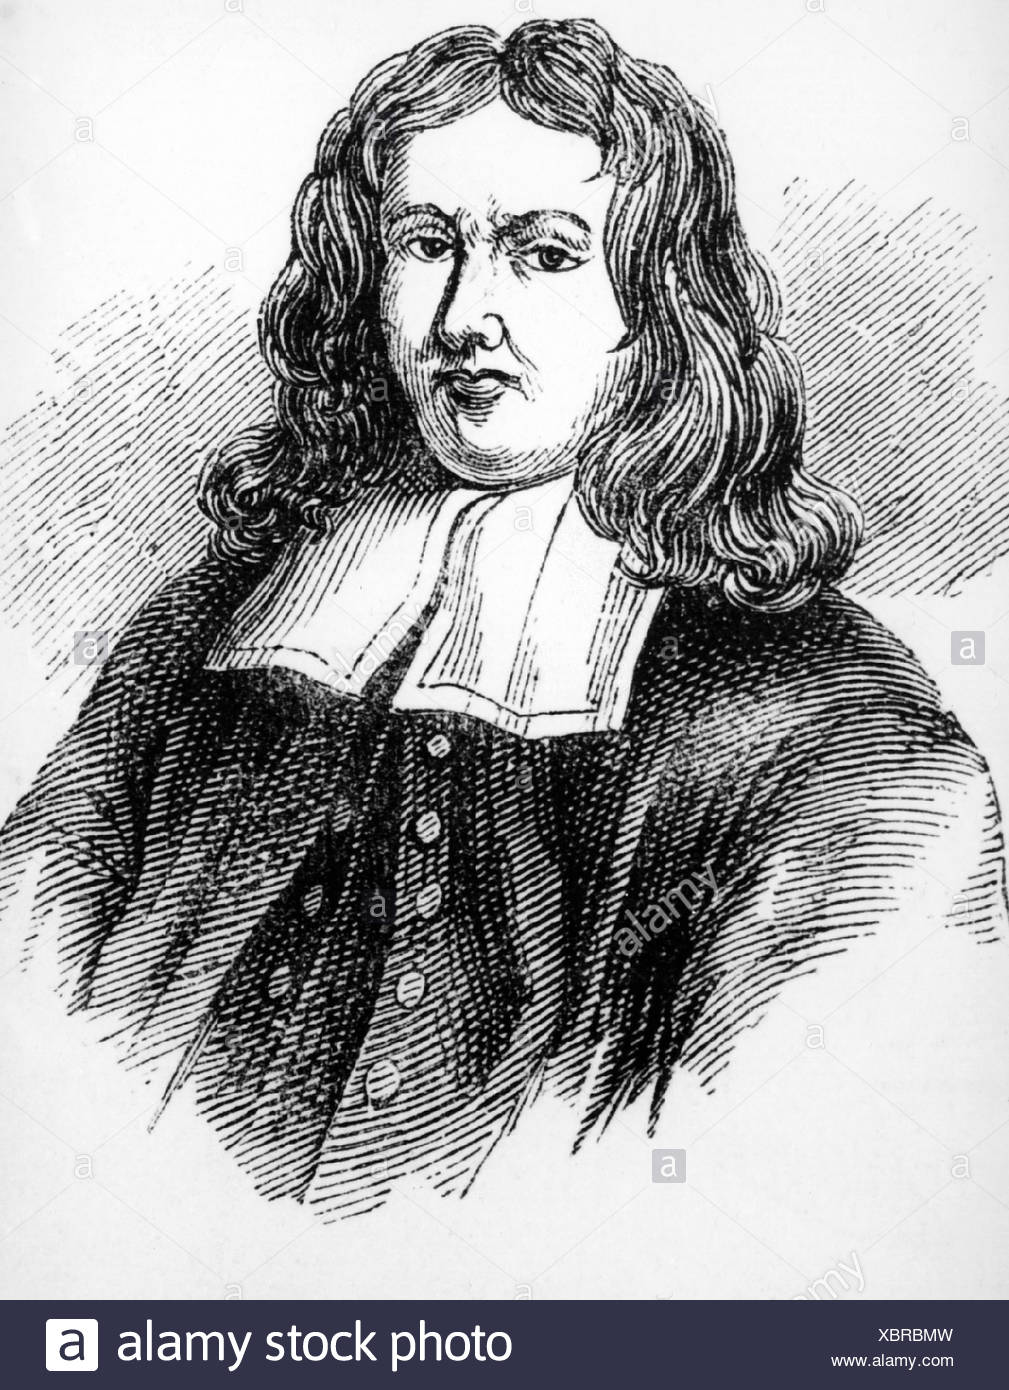 Sydenham, Thomas, 10.9.1624 - 29.12.1689, English physician, portrait, wood engraving, 19th century, , Additional-Rights-Clearances-NA - Stock Image